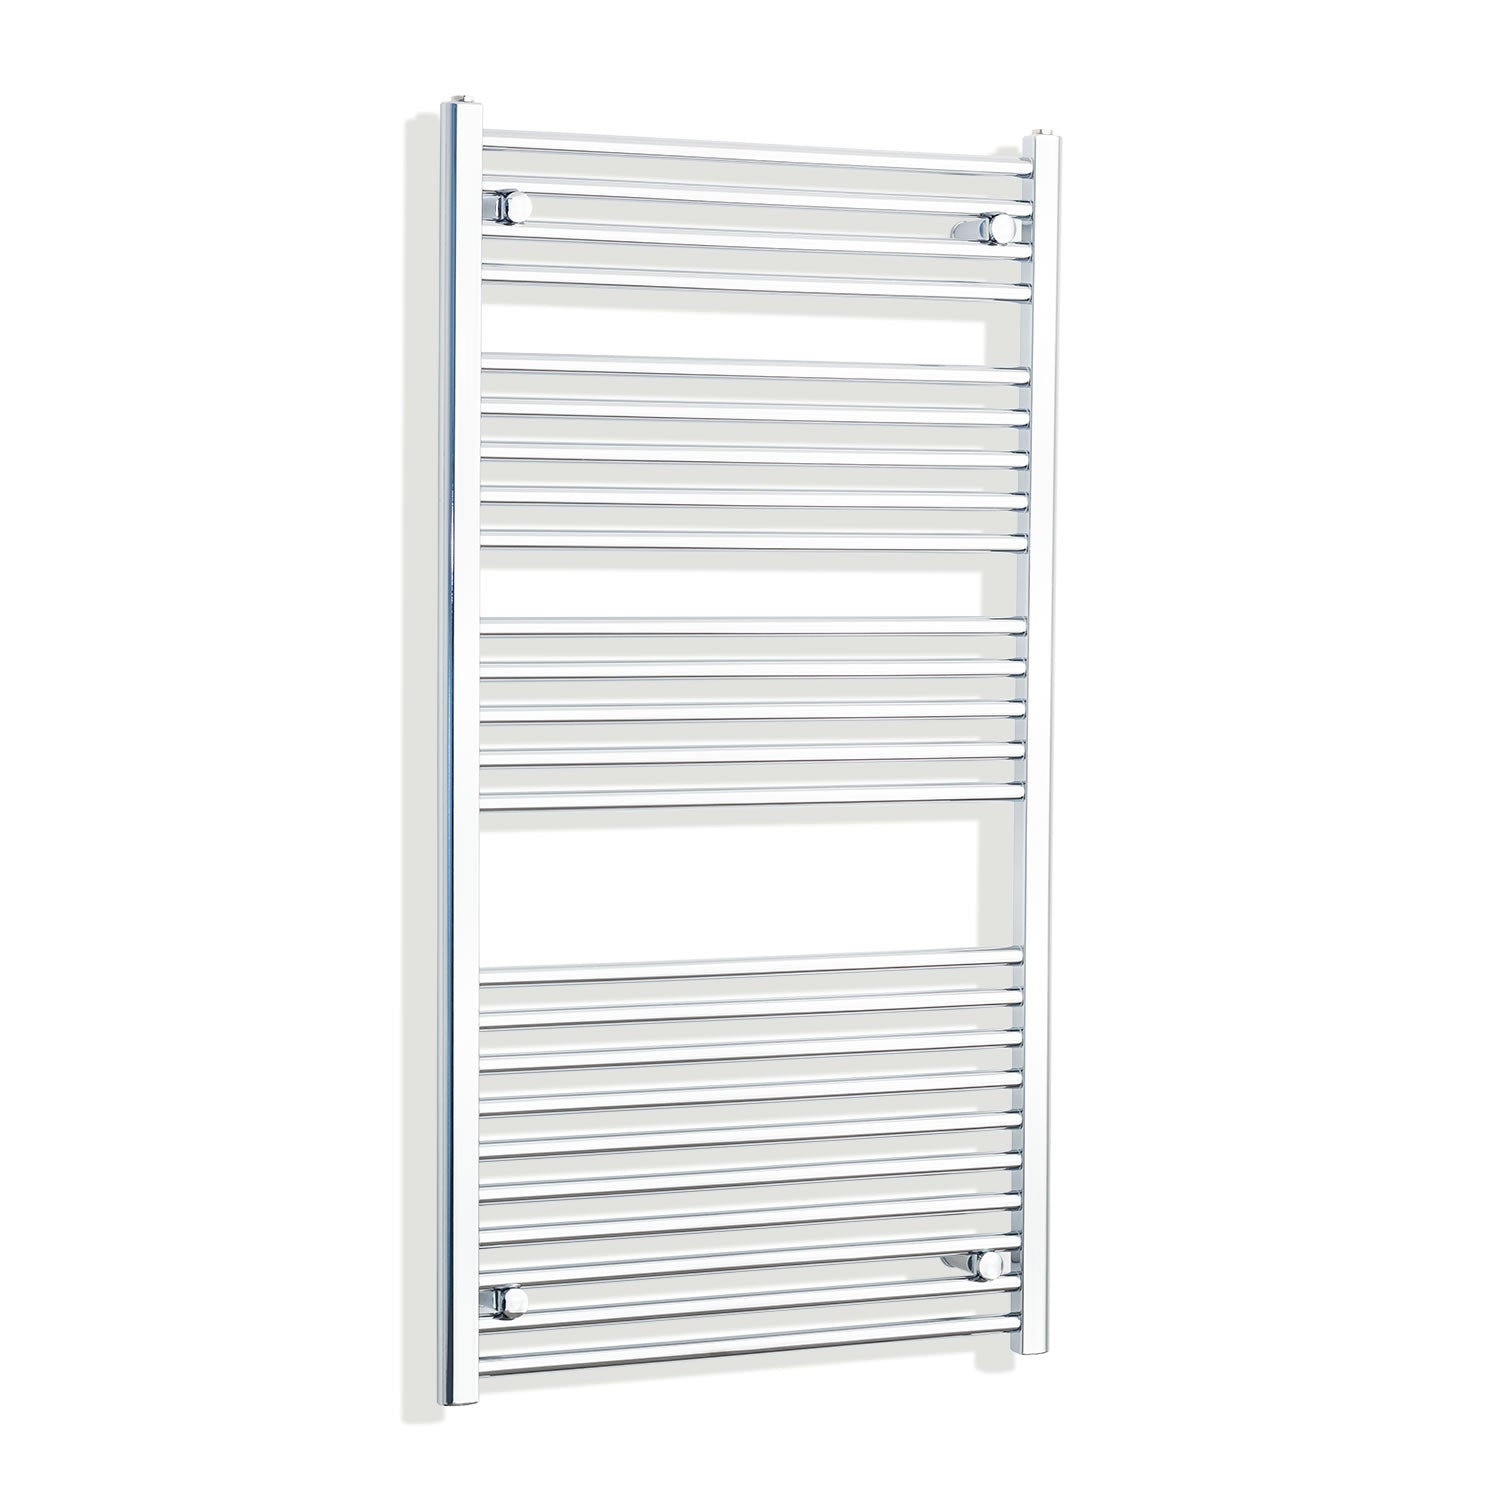 700mm Wide 1300mm High Chrome Towel Rail Radiator